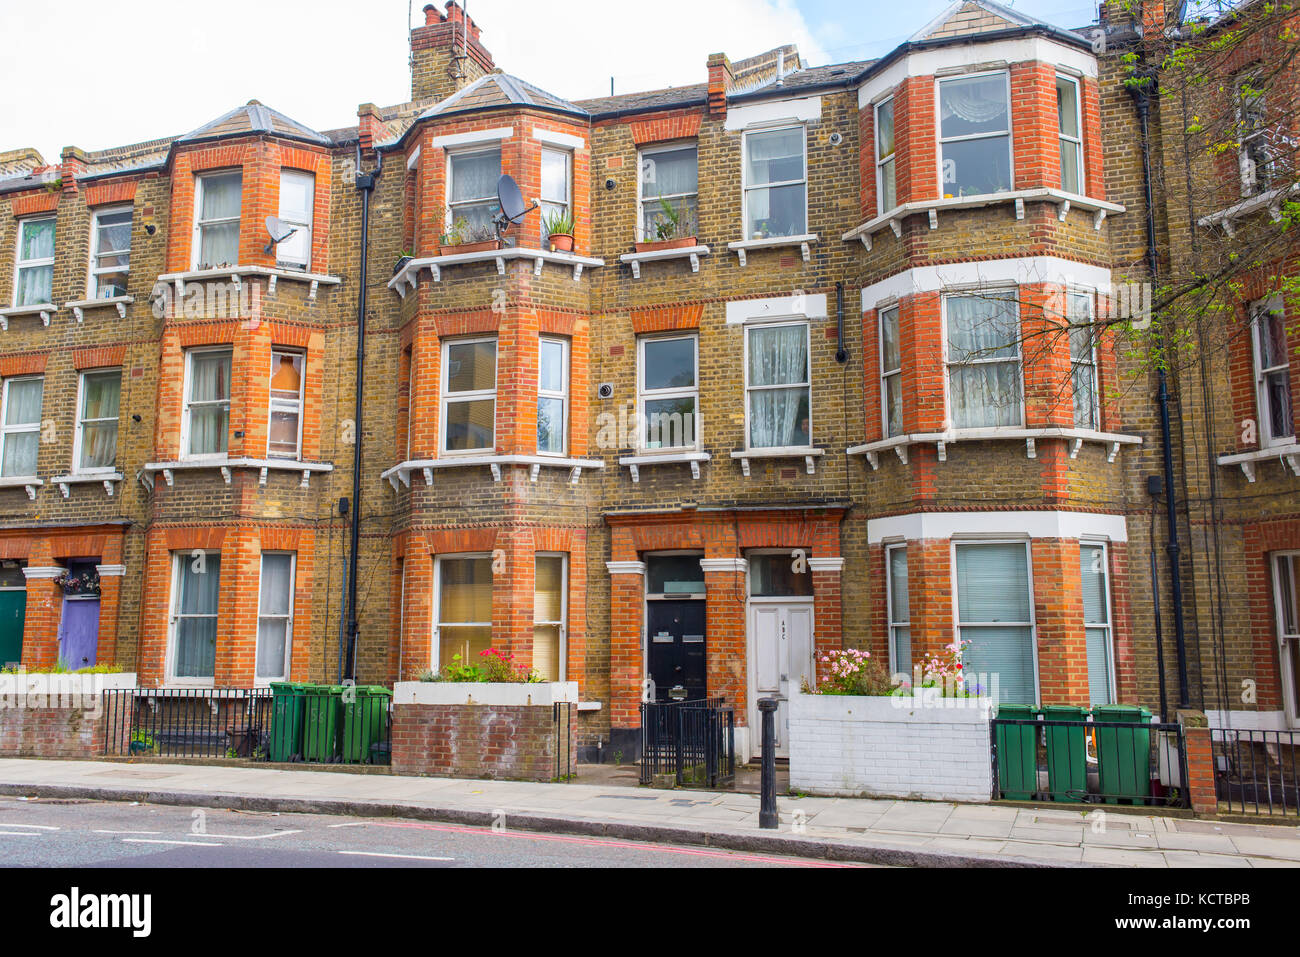 Classic British Victorian restored residential tenement building in red and yellow bricks with classic bay windows. - Stock Image